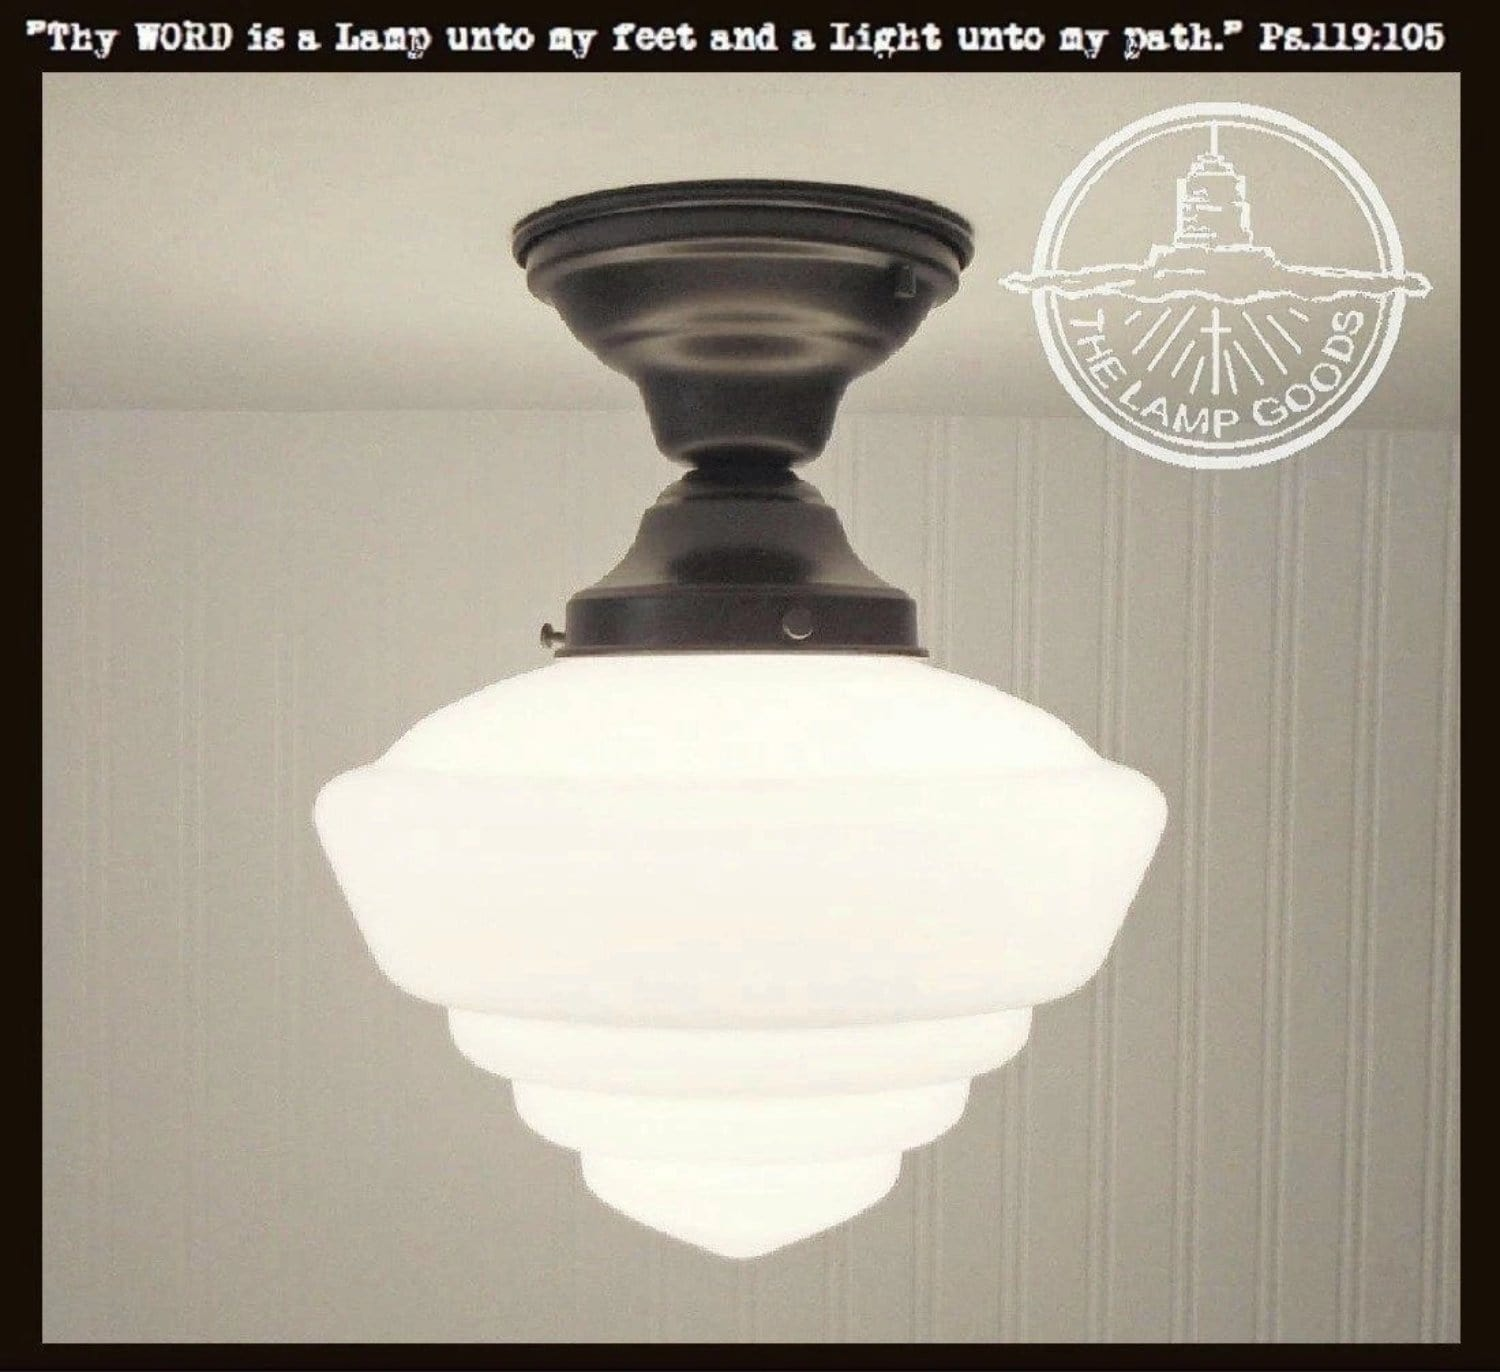 Milk glass schoolhouse ceiling light fixture the lamp goods